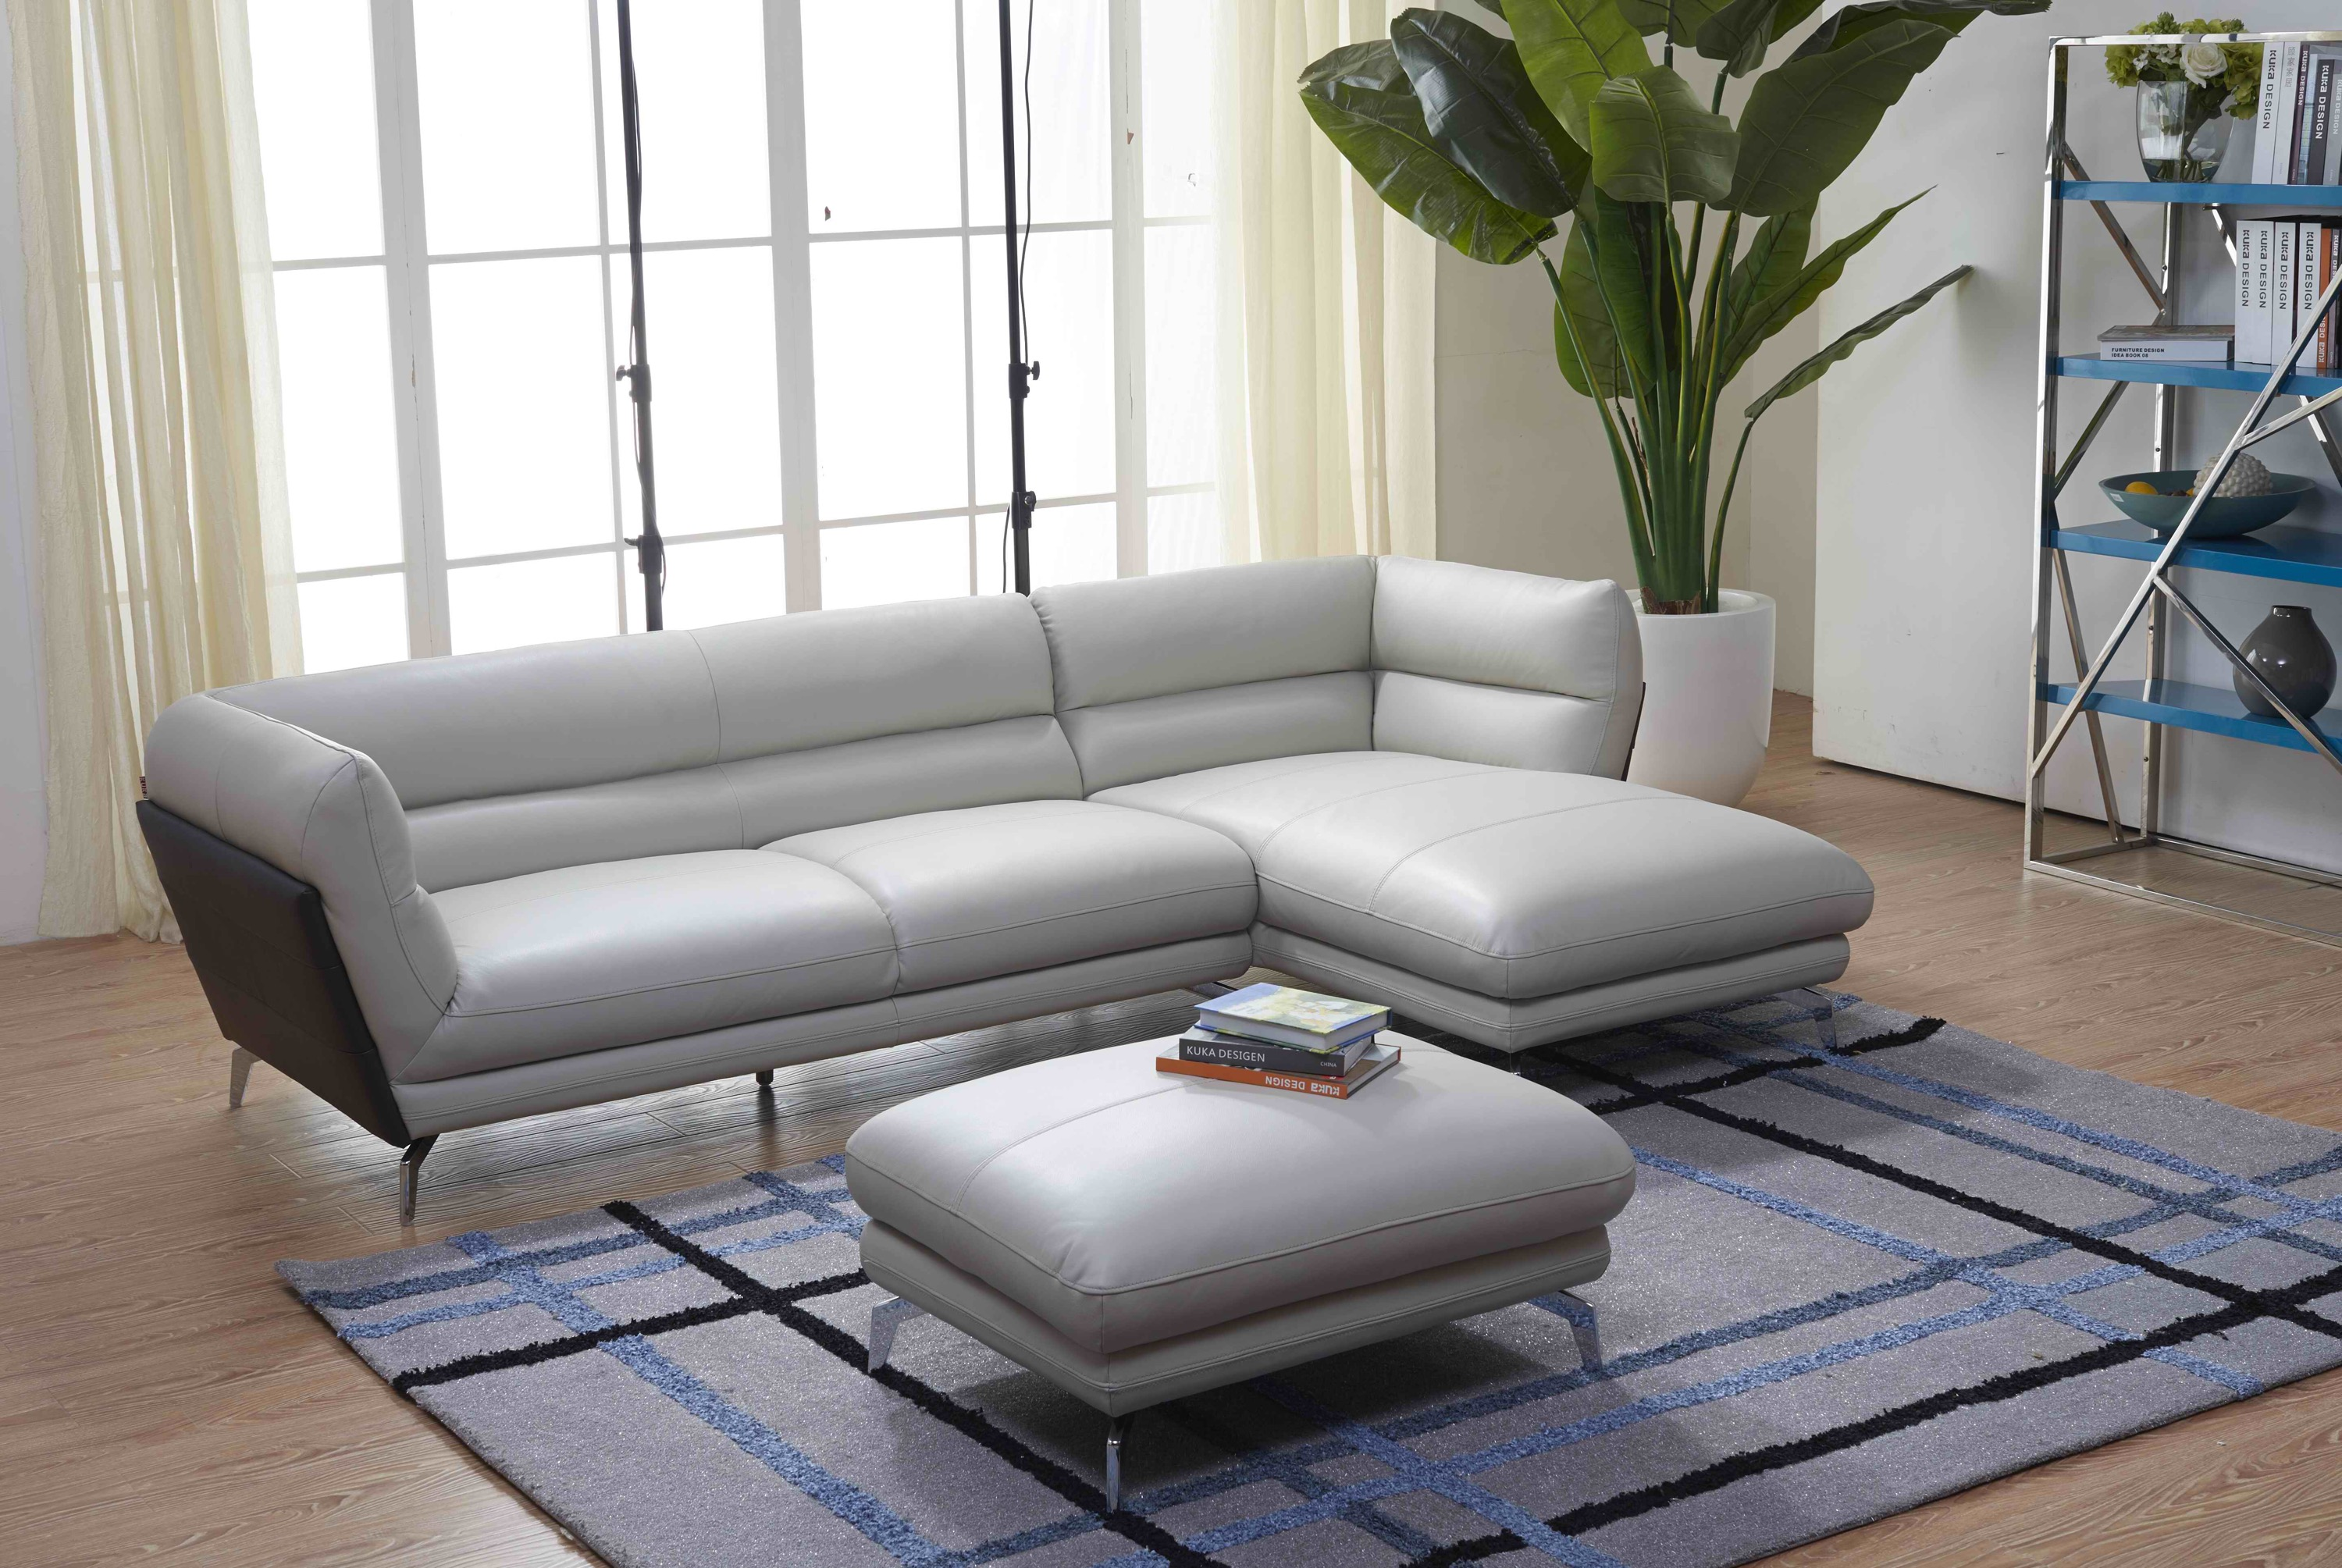 Designer Sofas Kuka Designer Sofa, Is This The Funkiest Corner Suite Ever - Furnimax News